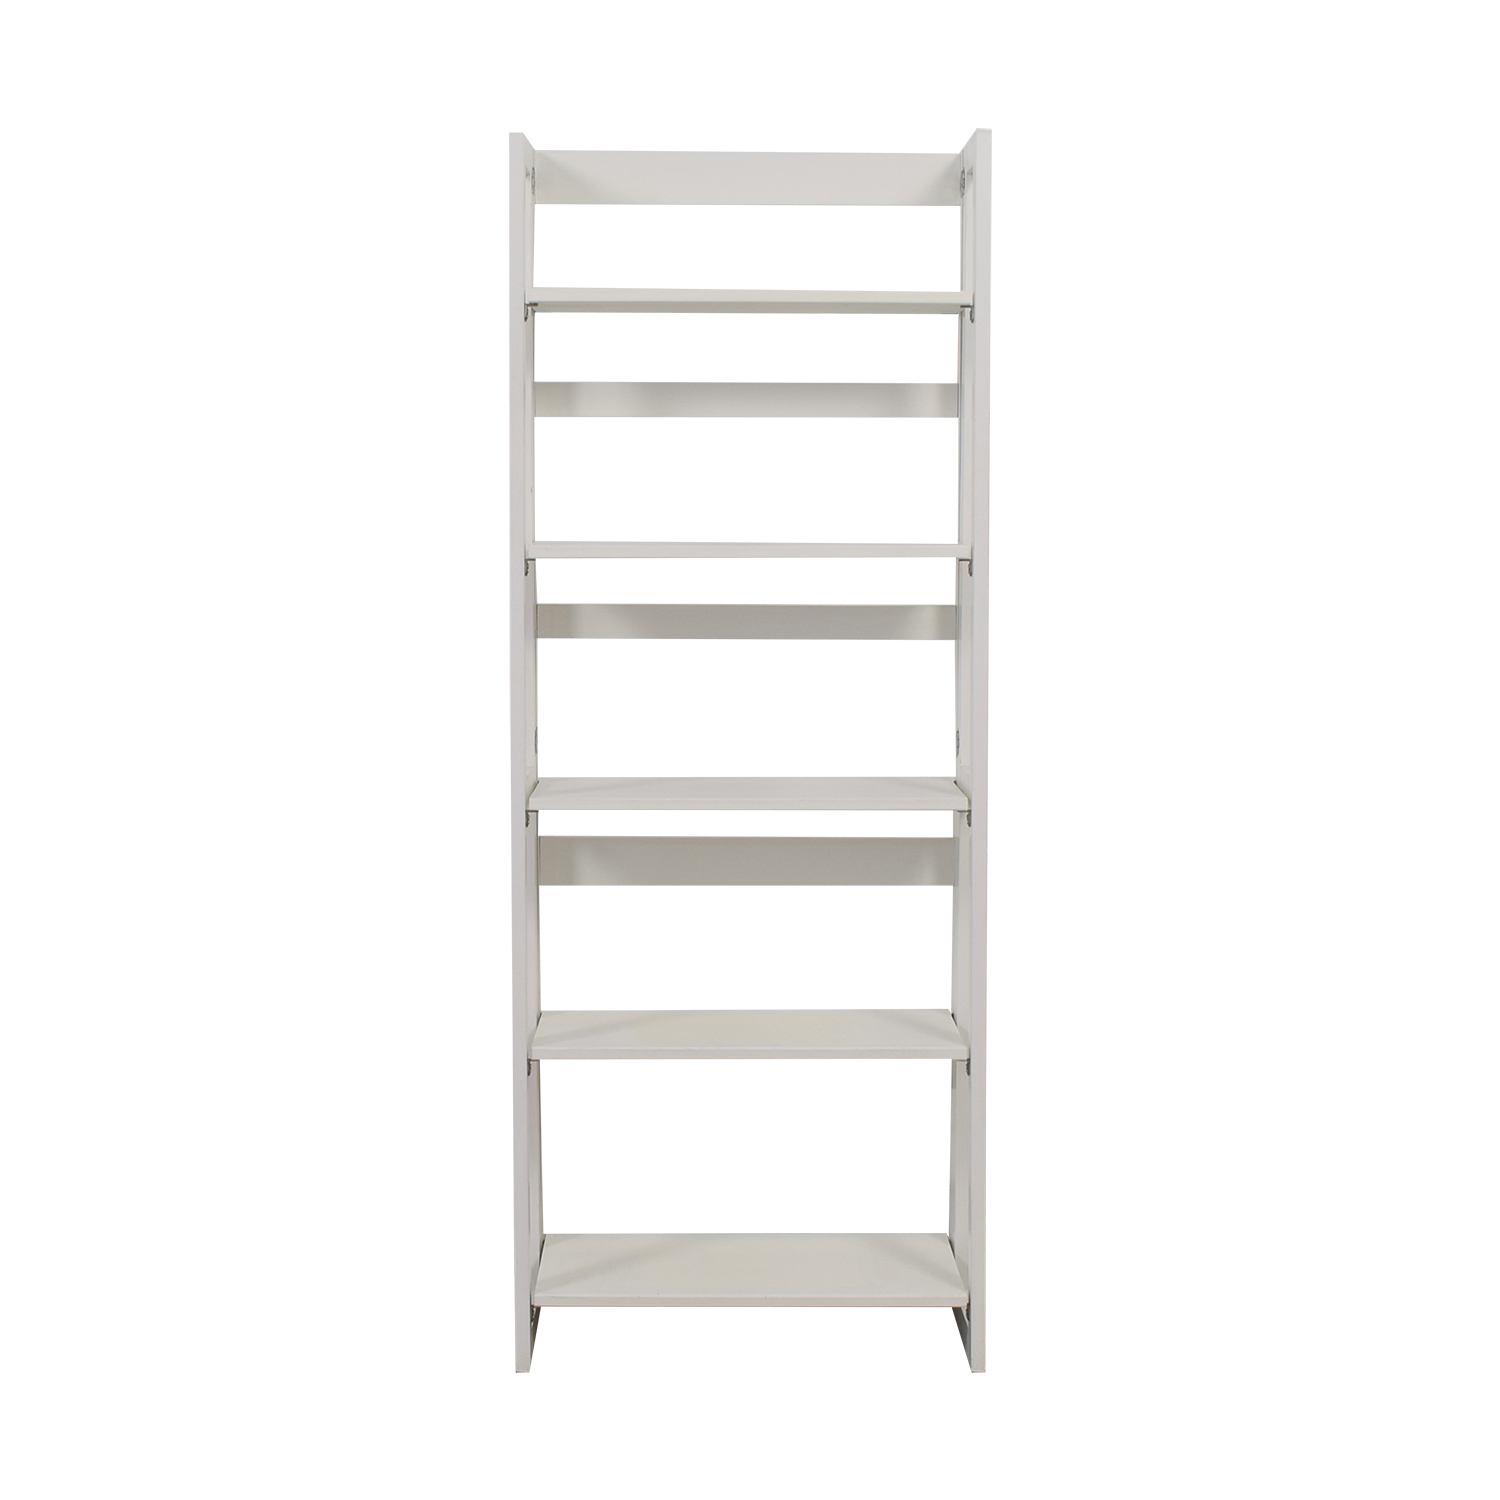 White Folding Bookshelf on sale